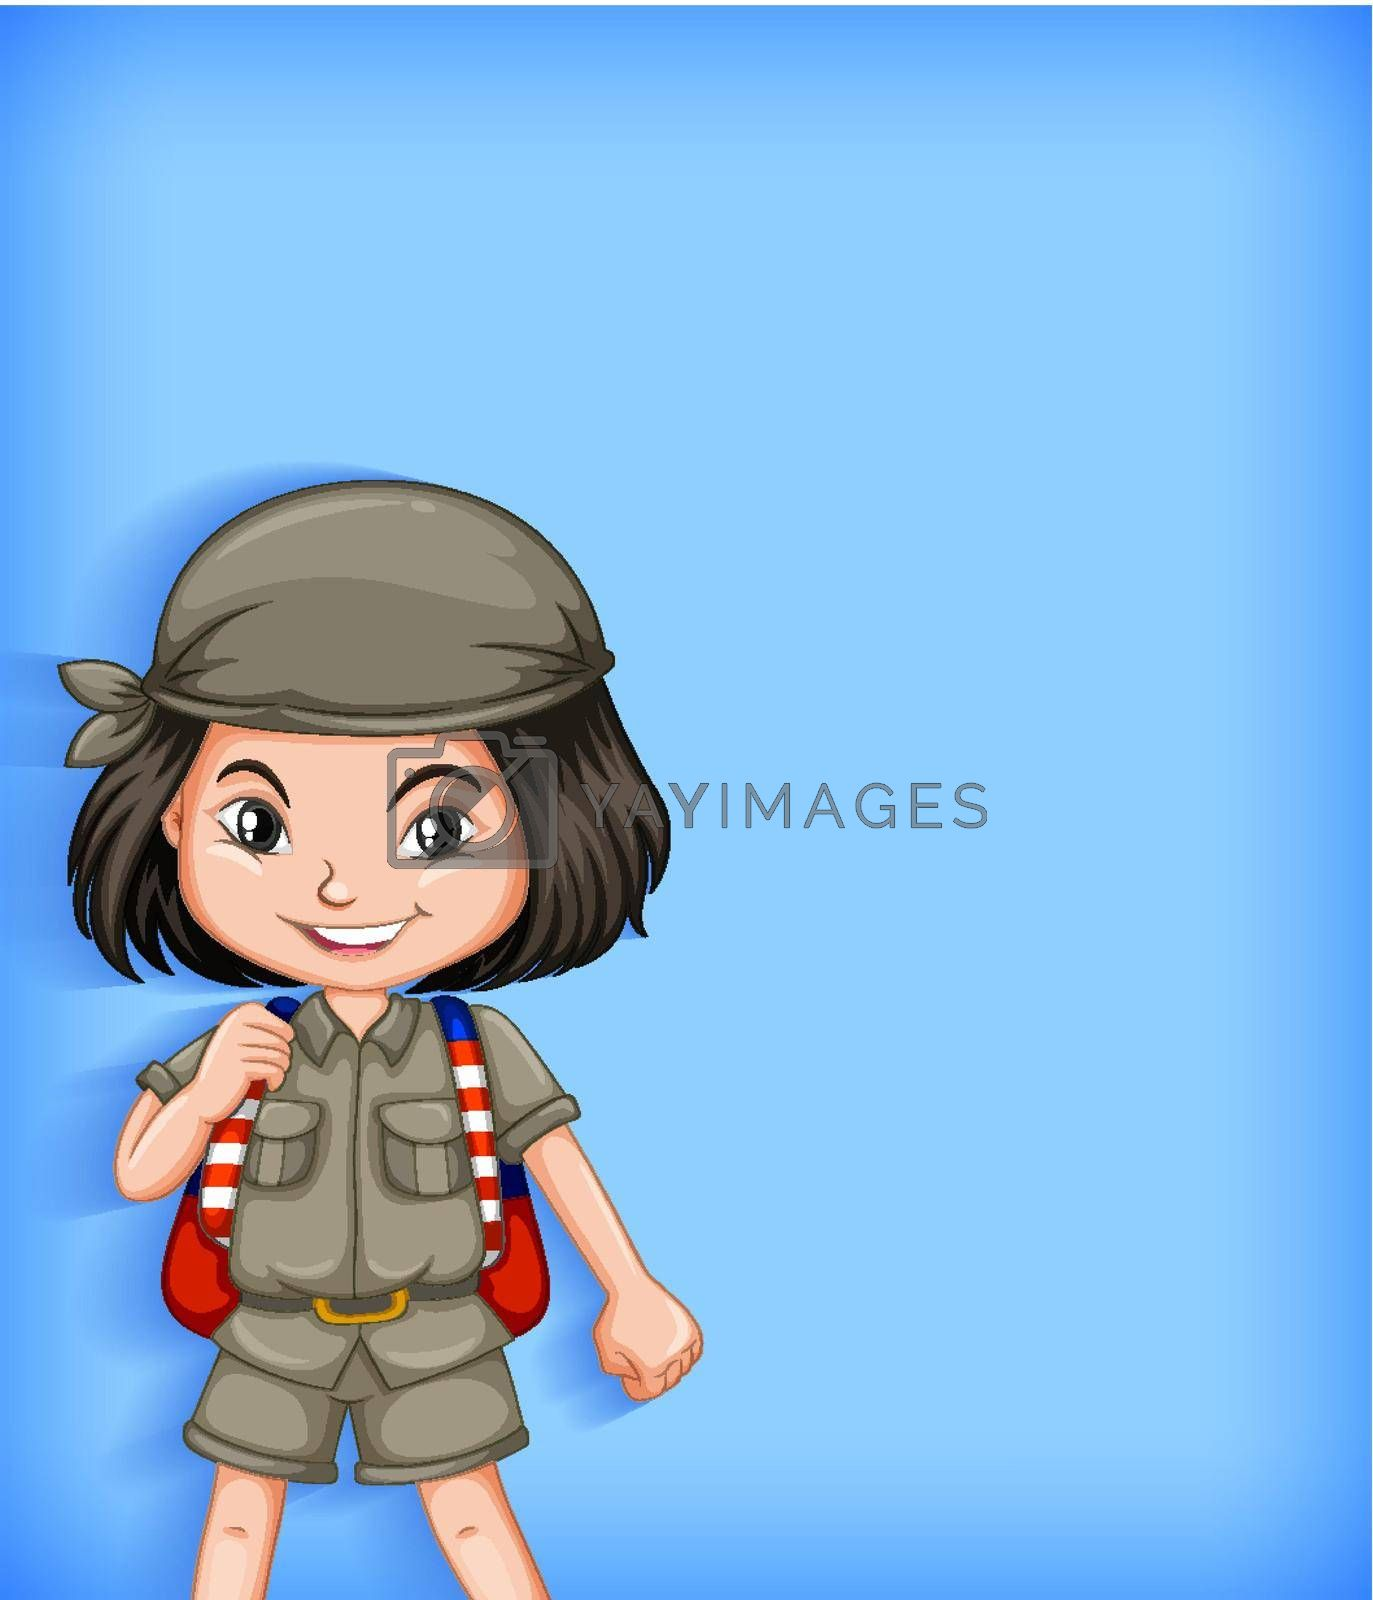 Girl scout cartoon character illustration